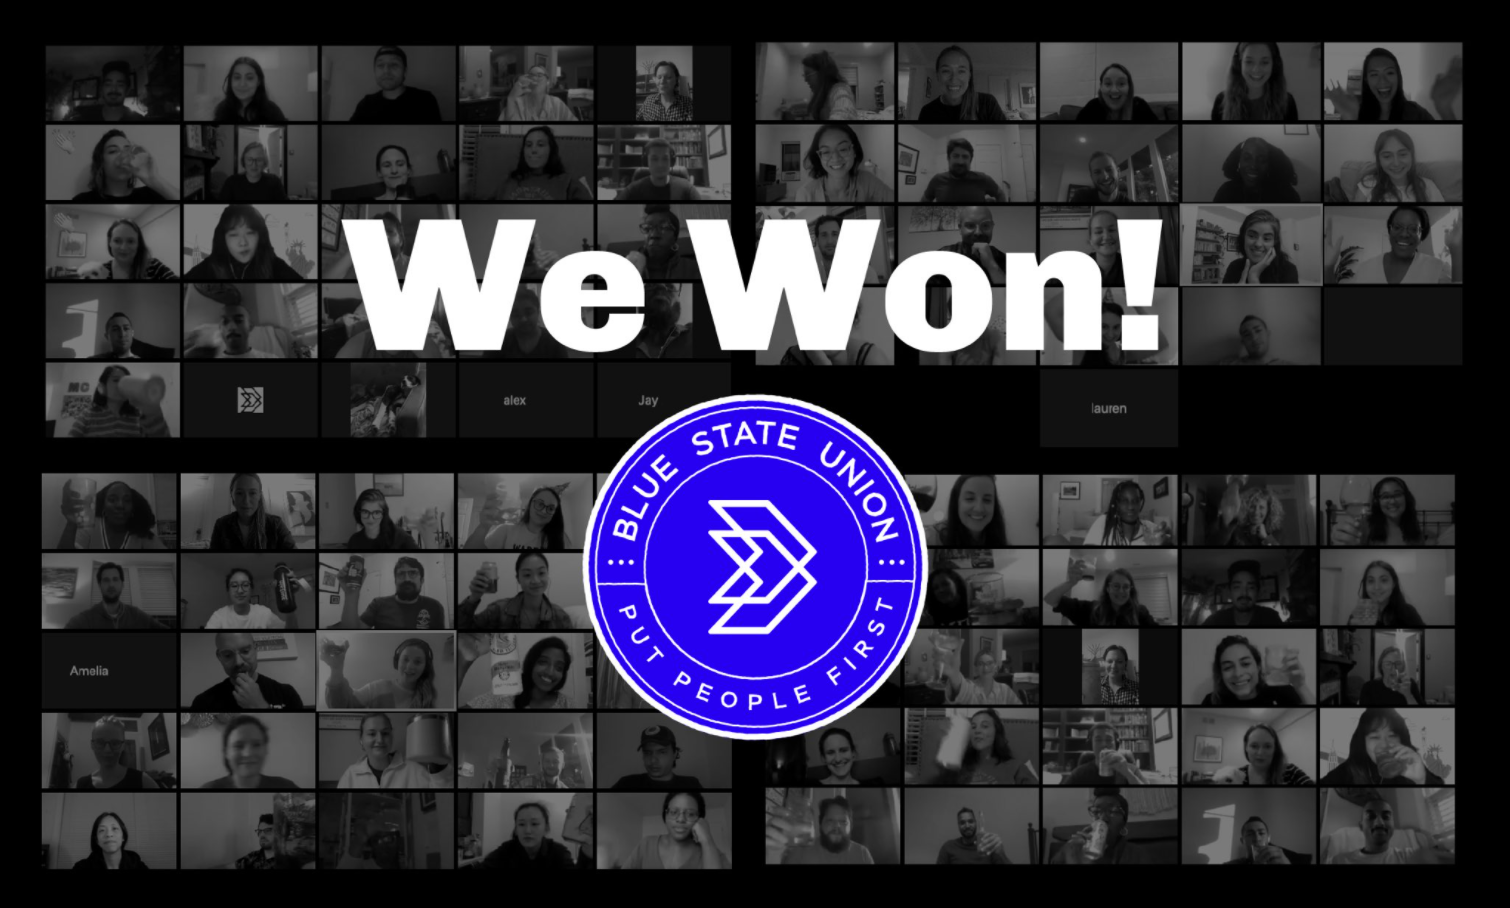 """Photo of many workers on zoom taking a solidarity photo with the Blue State union logo and the words """"We Won!"""""""